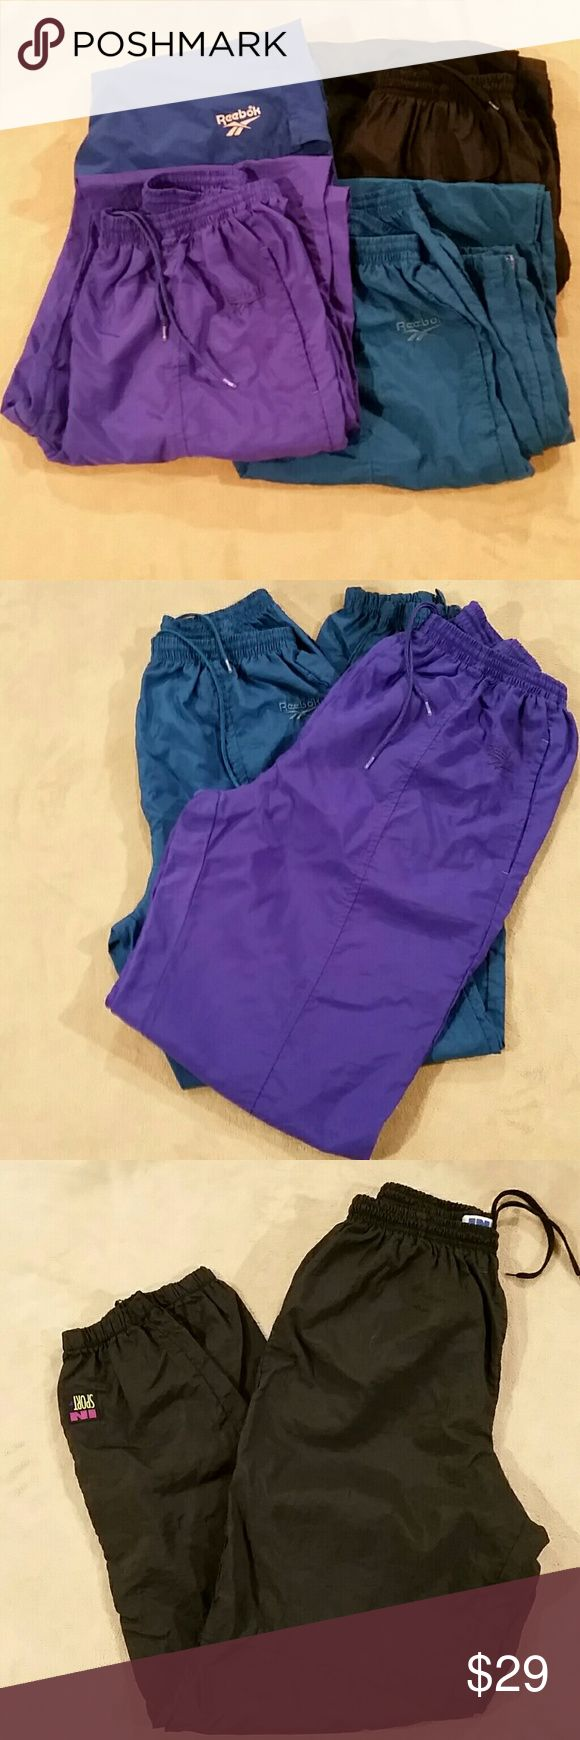 4 pair of athletic bottoms Two pair Reebok jogging pants One pair in Sport jogging pants One pair Reebok jogging shorts The Reebok jogging pants don't have size tags but all of these are larges All lightweight All four included in the price Reebok Pants